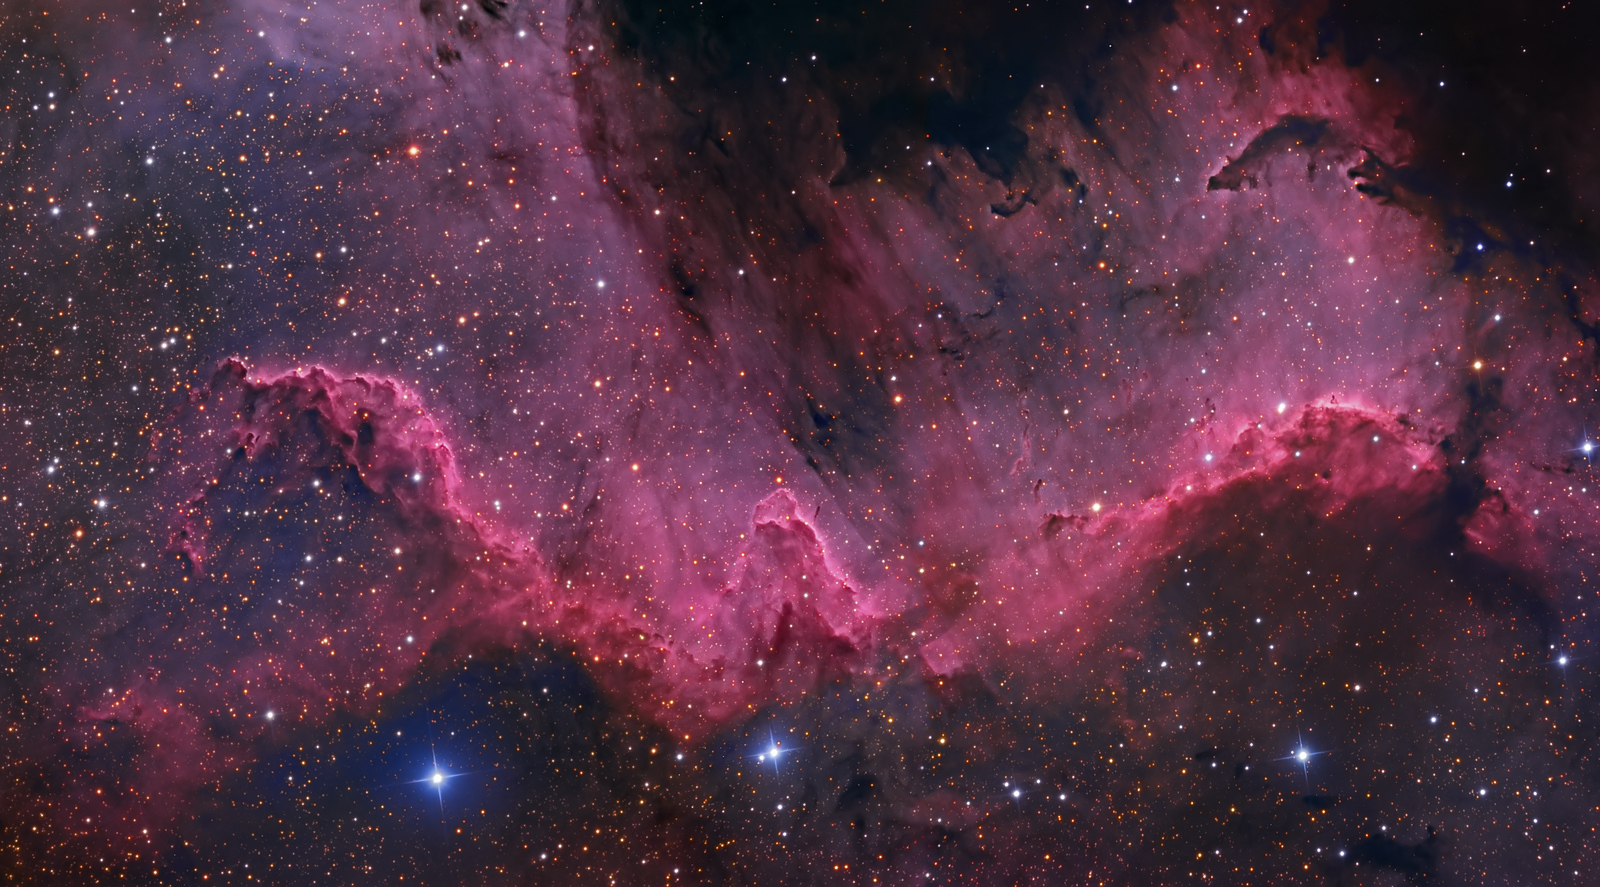 "The Cygnus Wall 2 frames Mosaic 16"" RCOS Apogee F16 NMSkies Remote June/July 2013 HaLRGB (4,3,1.5,1.5,1.5) each frame"